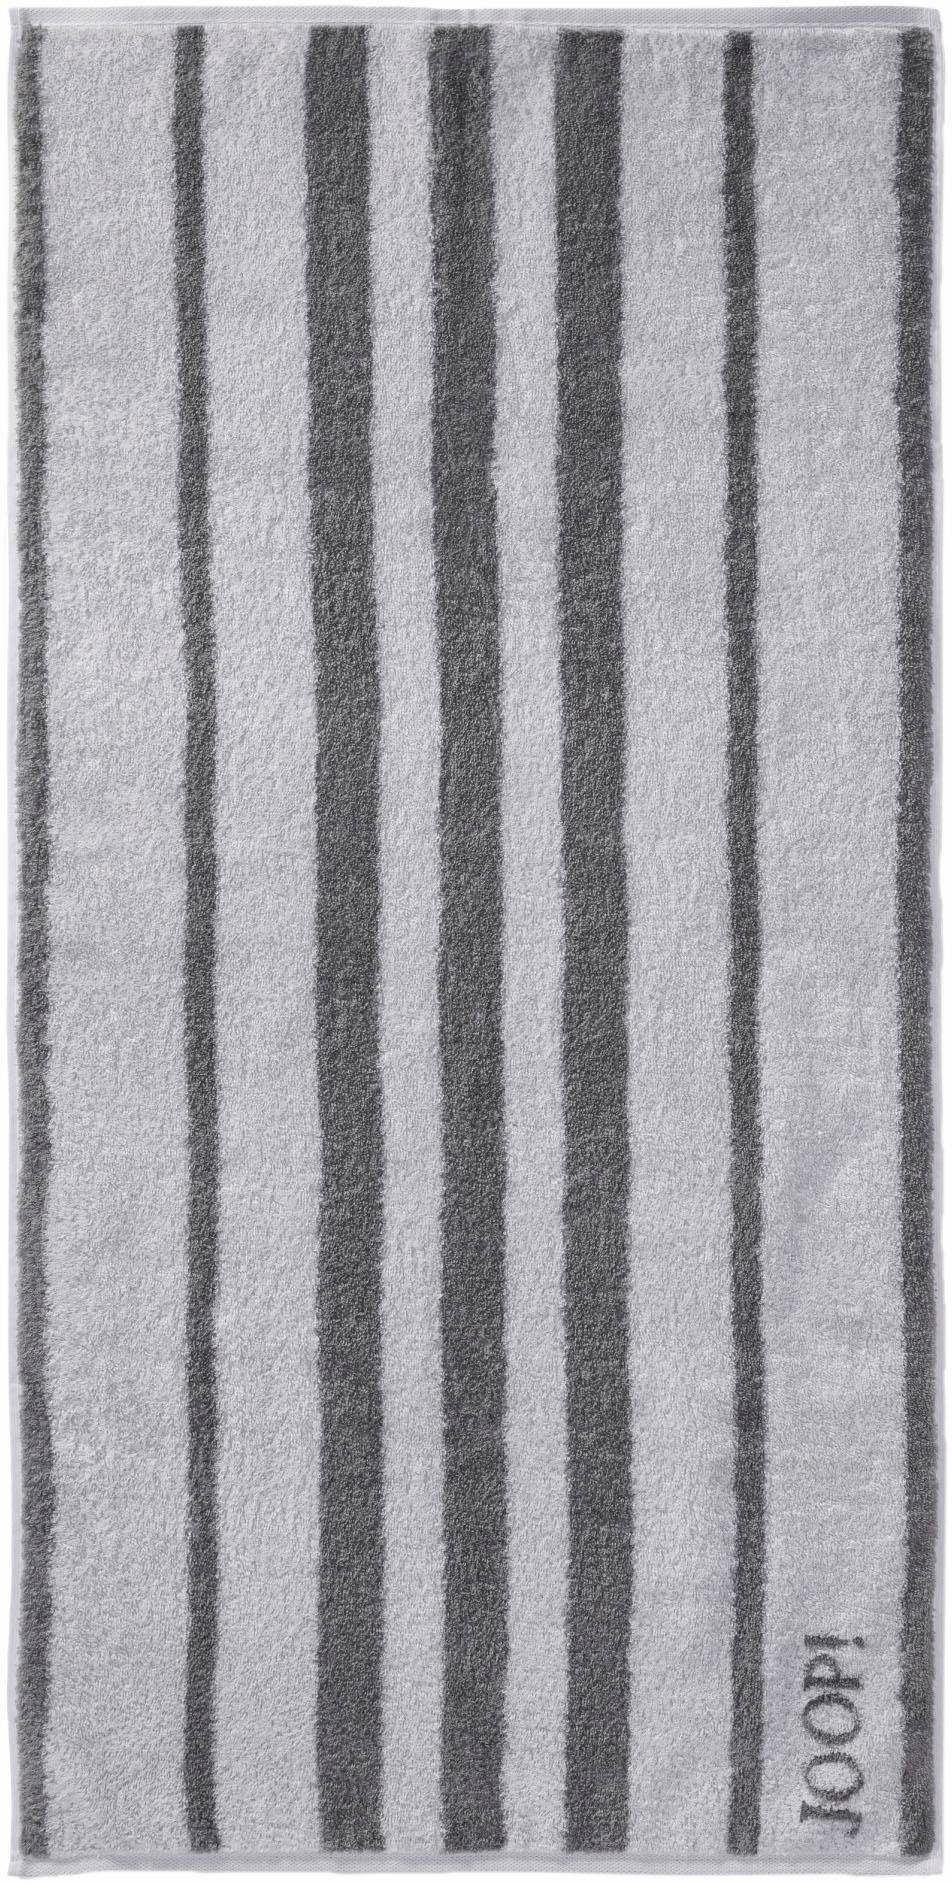 Handtücher »Purity Stripes«, Joop!, extraflauschiges Material